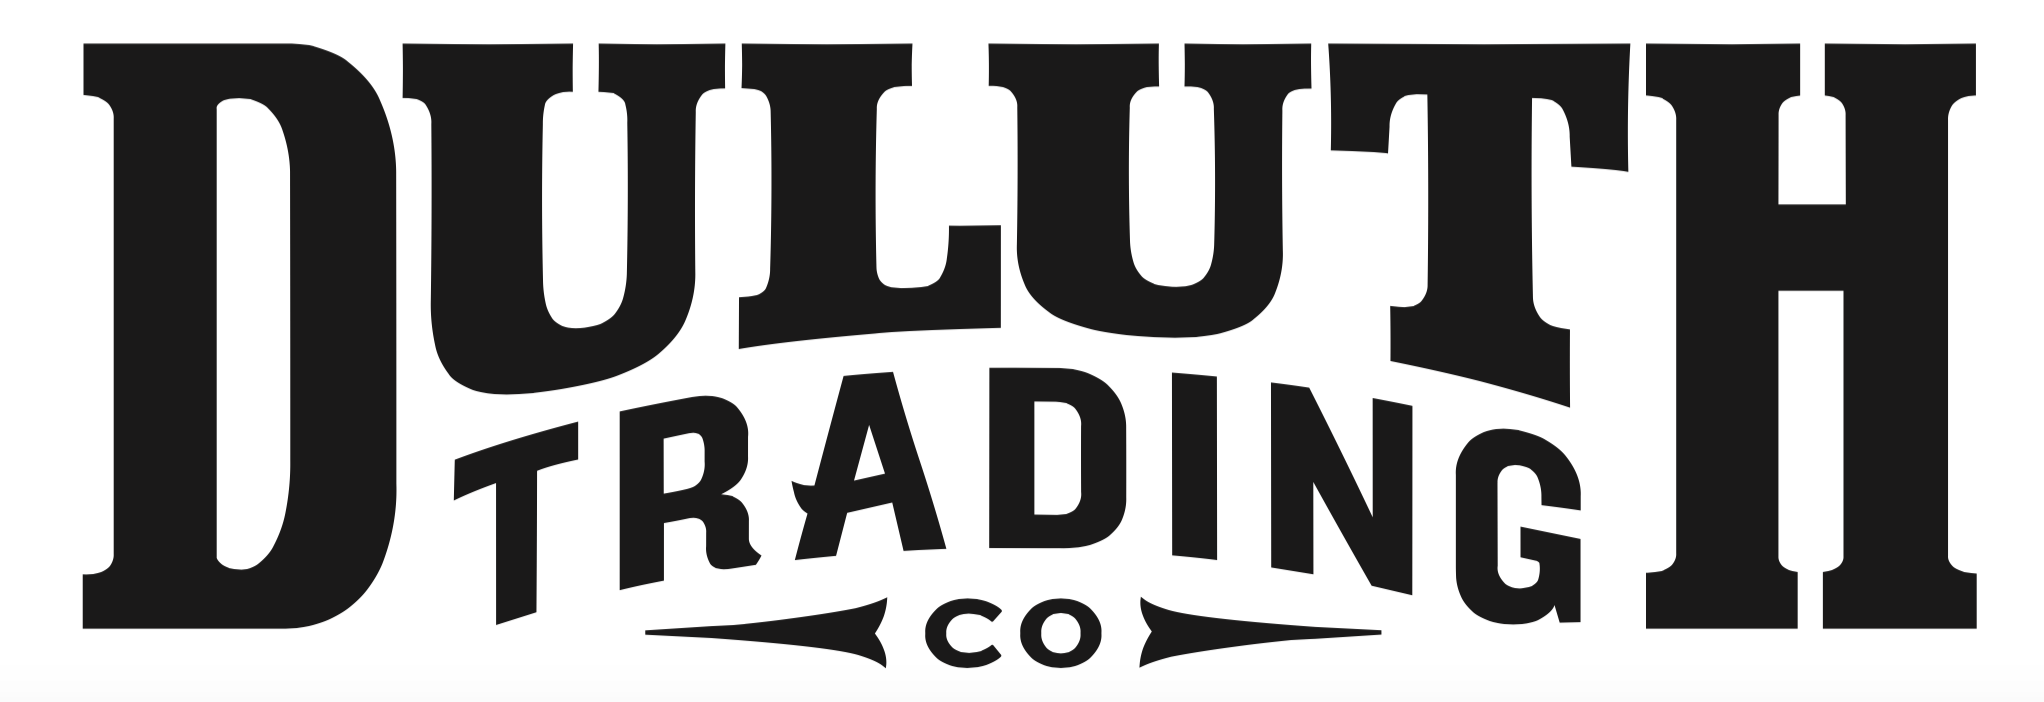 Duluth Trading Company And Turner Join Forces Turner